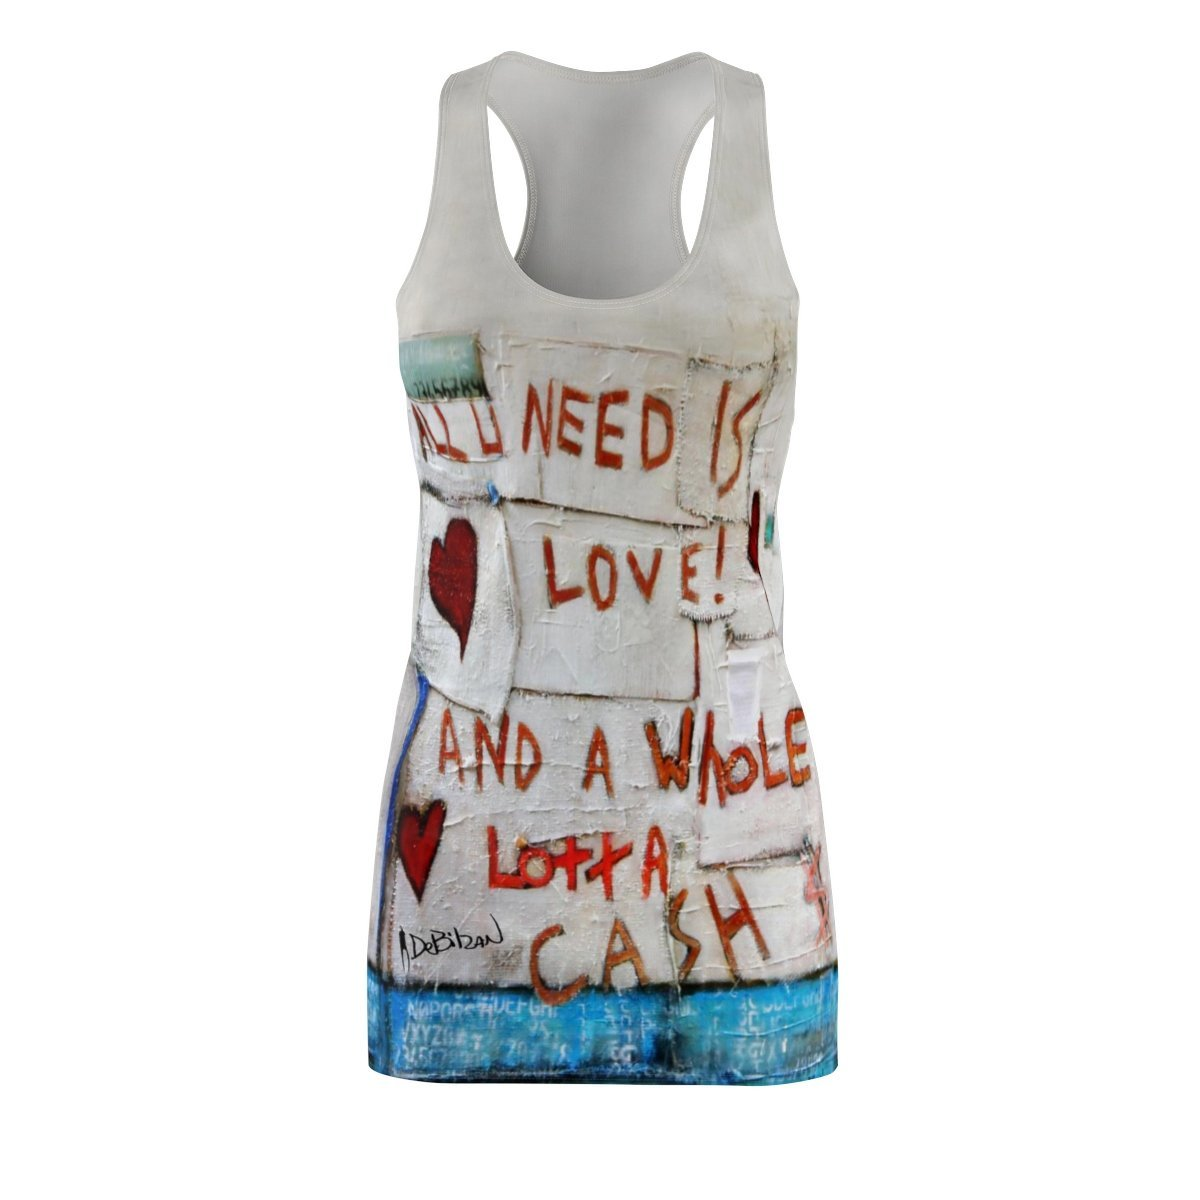 All You Need Is  Love + Cash One Piece Dress - DeBilzan Gallery